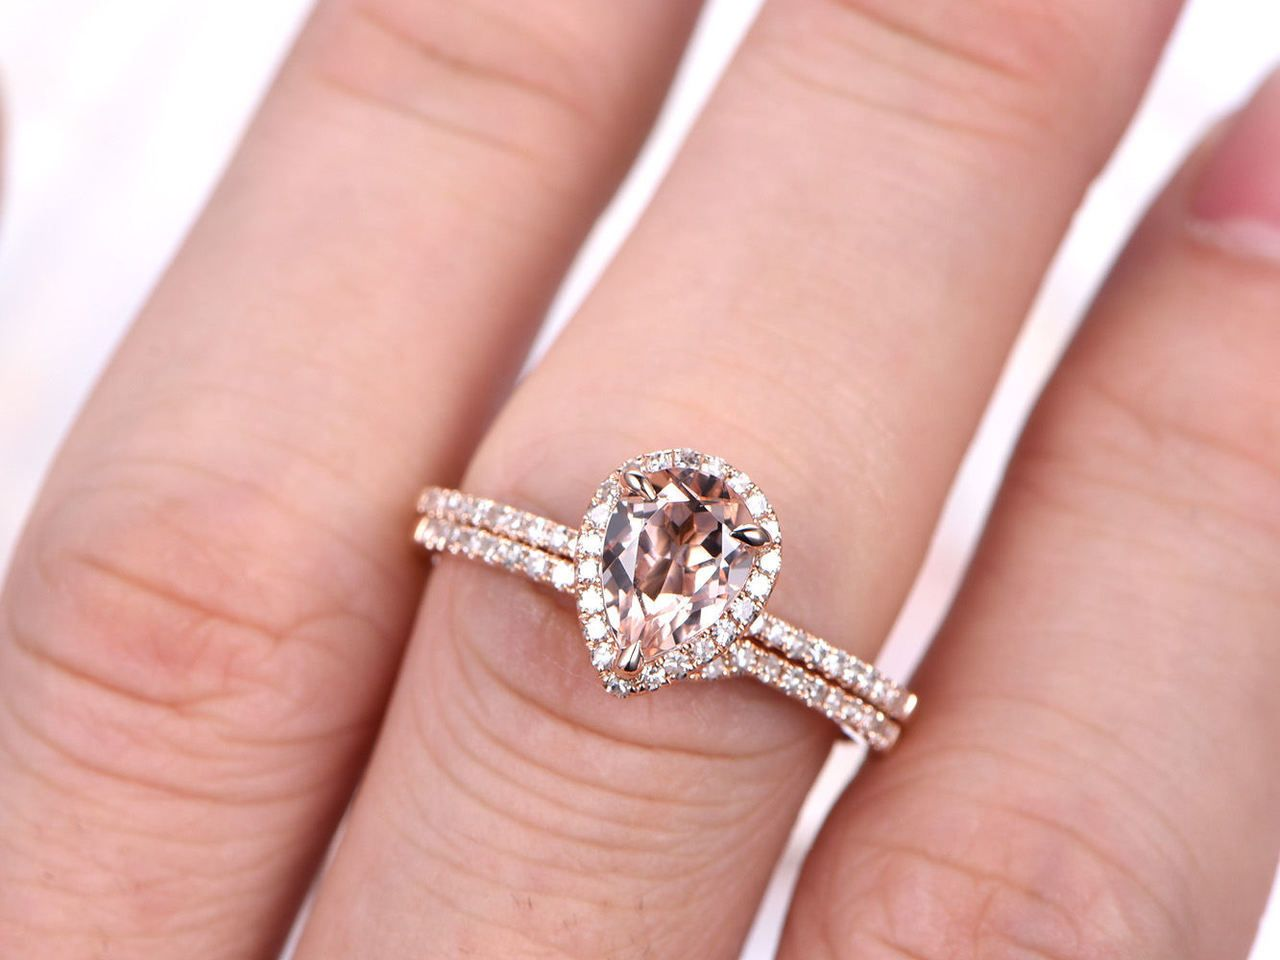 Morganite Bridal Set,Morganite Ring Set,6x8mm Pear Cut Morganite ...